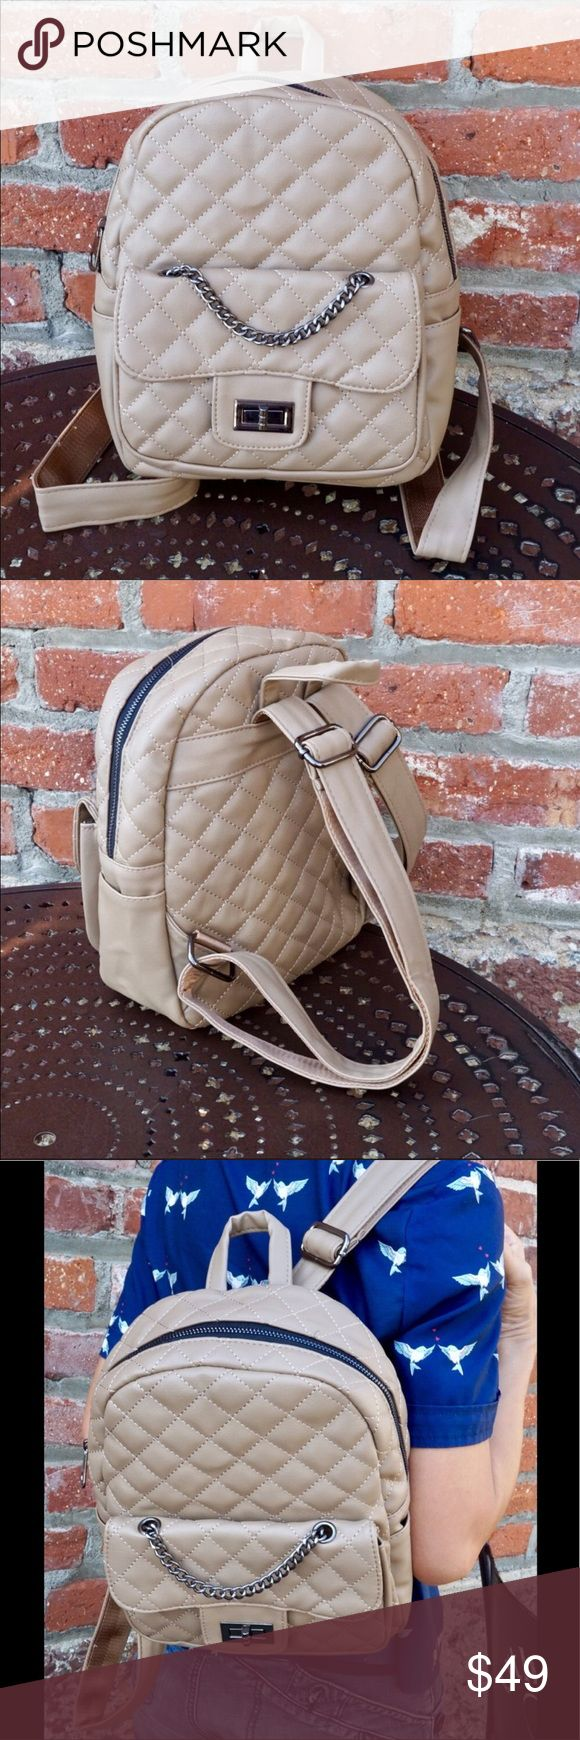 Stylish beige backpack Cute quilted backpack with fashion details. Not full size and not mini. This backpack could be just right to carry your things hands free.  Approximately 11 x 10.75 x 3.25 Pink Haley Bags Backpacks